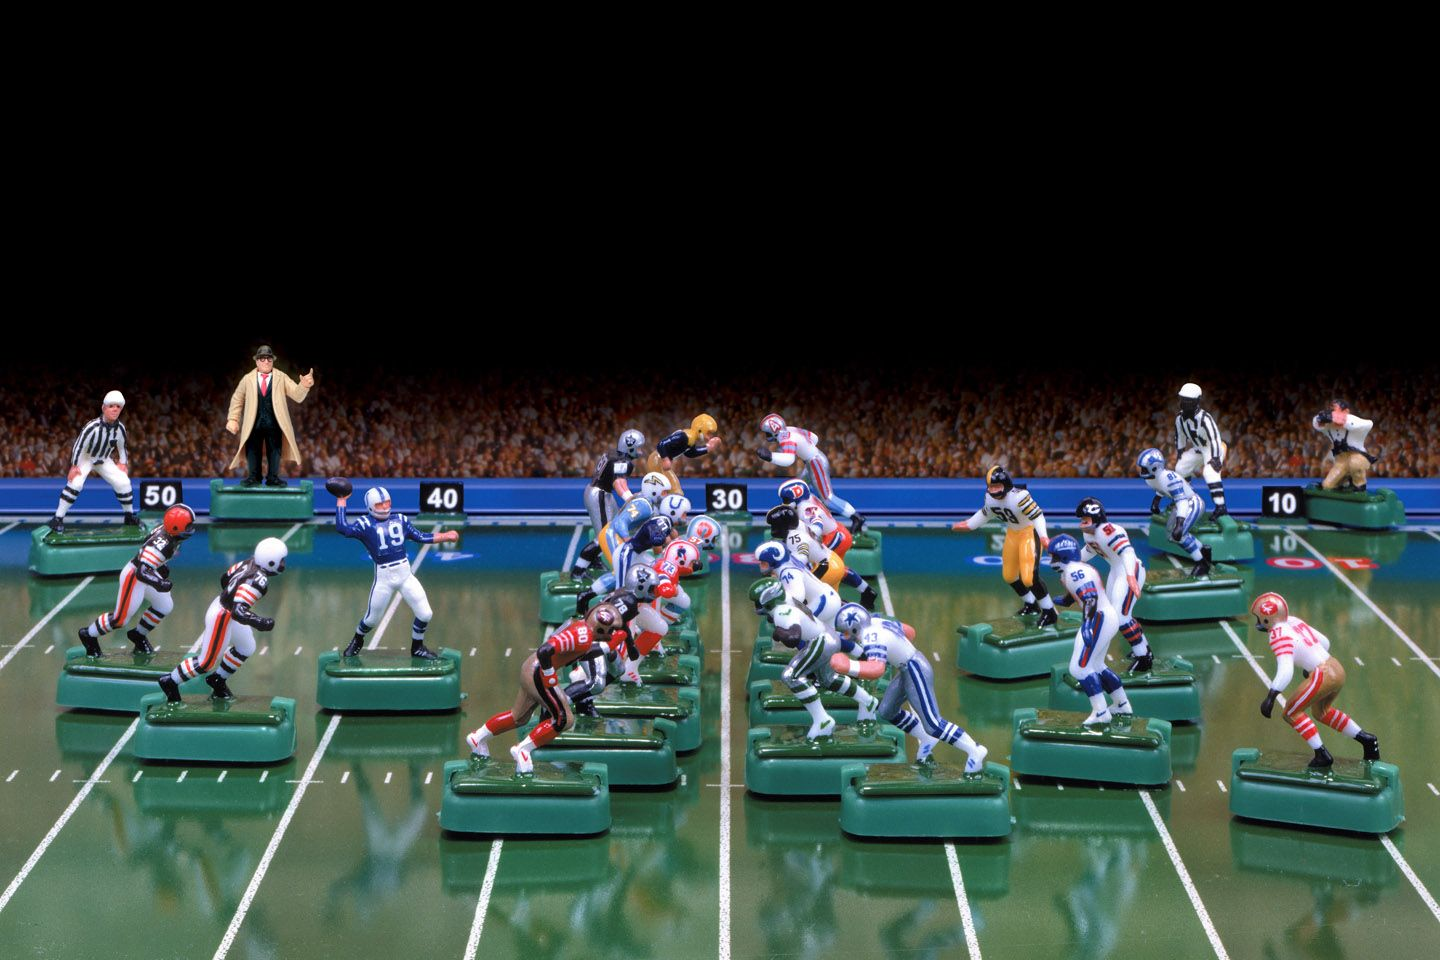 Electric Football Game I Had One Like This In About 1970